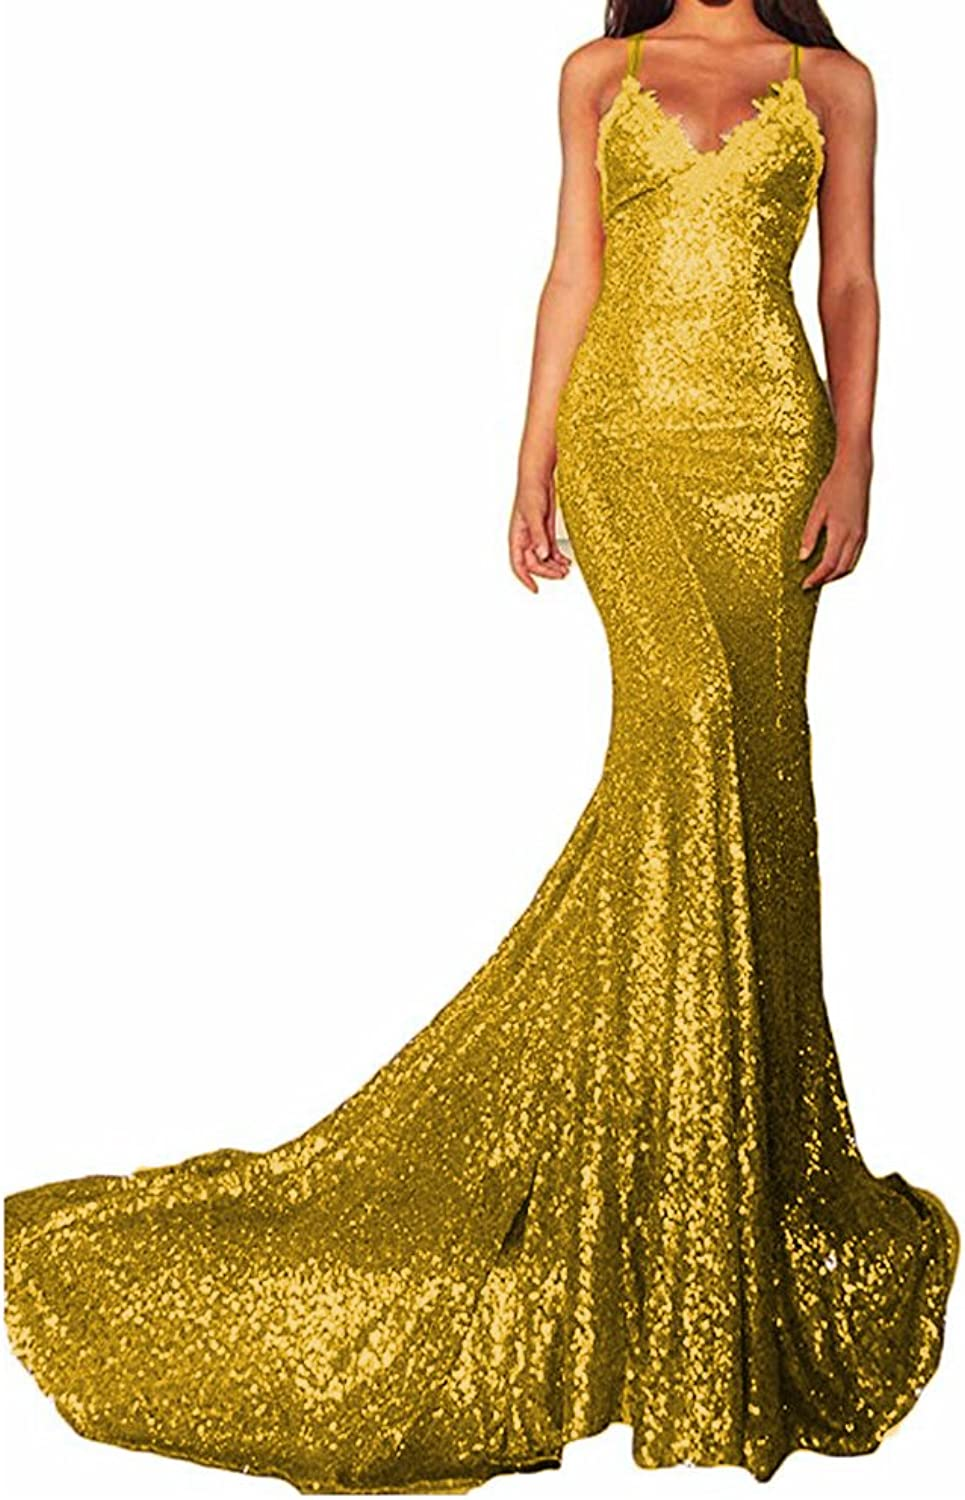 Beautydress Womens Mermaid Sequins Long Train Prom Dress for Evening Party BP067